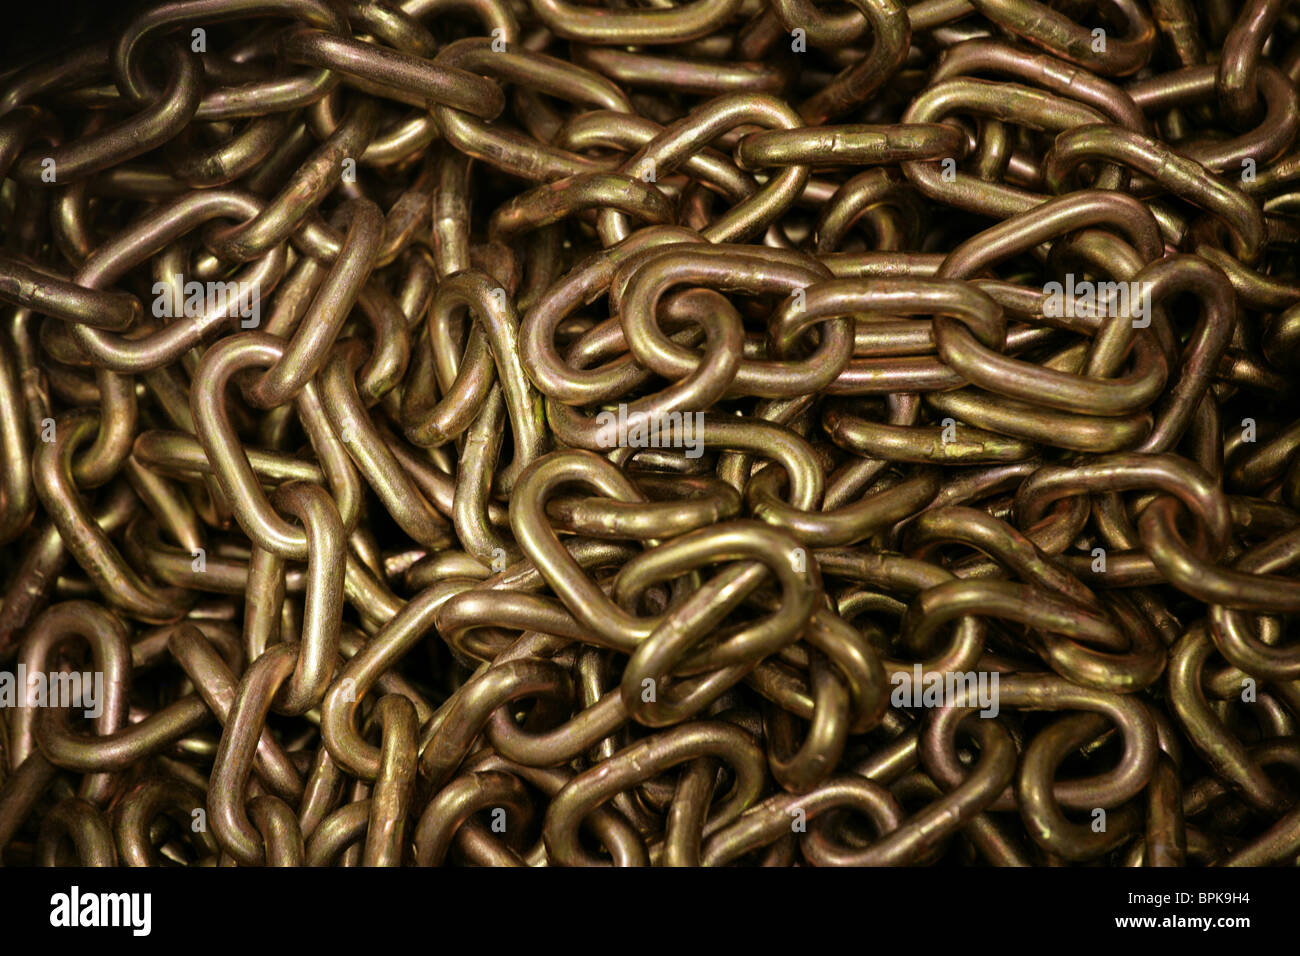 A pile of chains - Stock Image